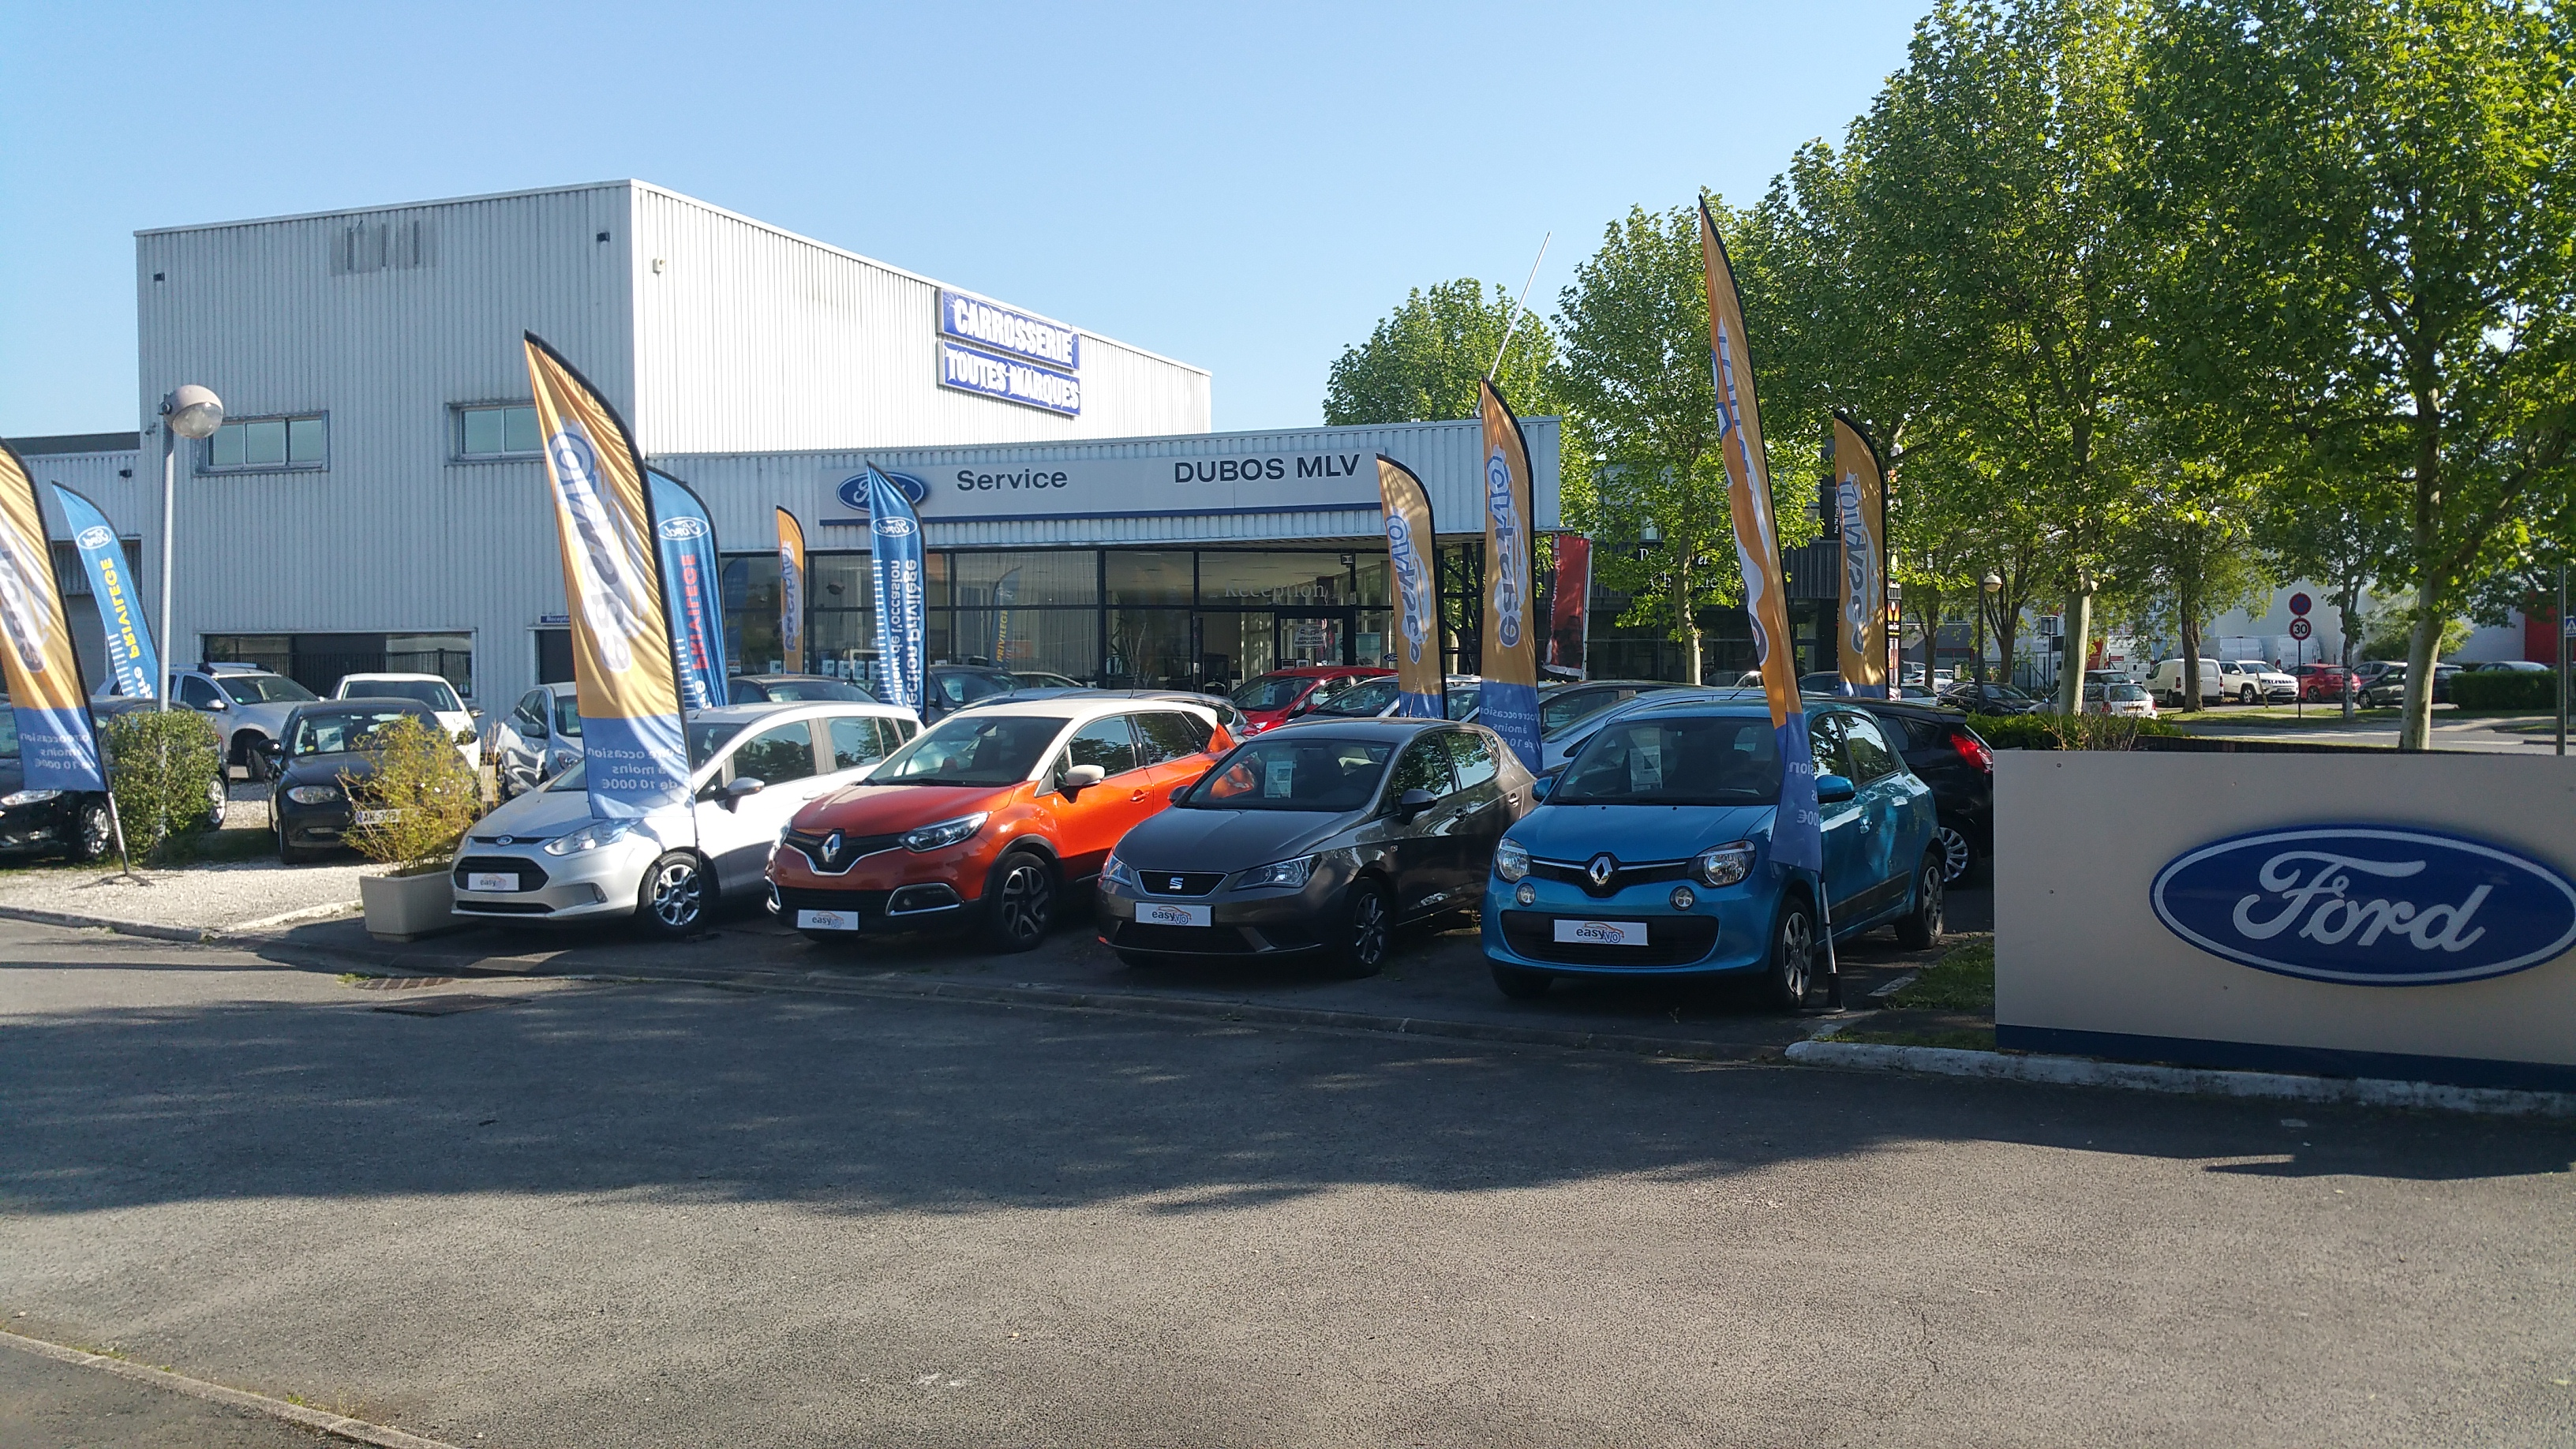 Ford dubos mlv voiture occasion saint thibault des for Garage volkswagen saint thibault des vignes